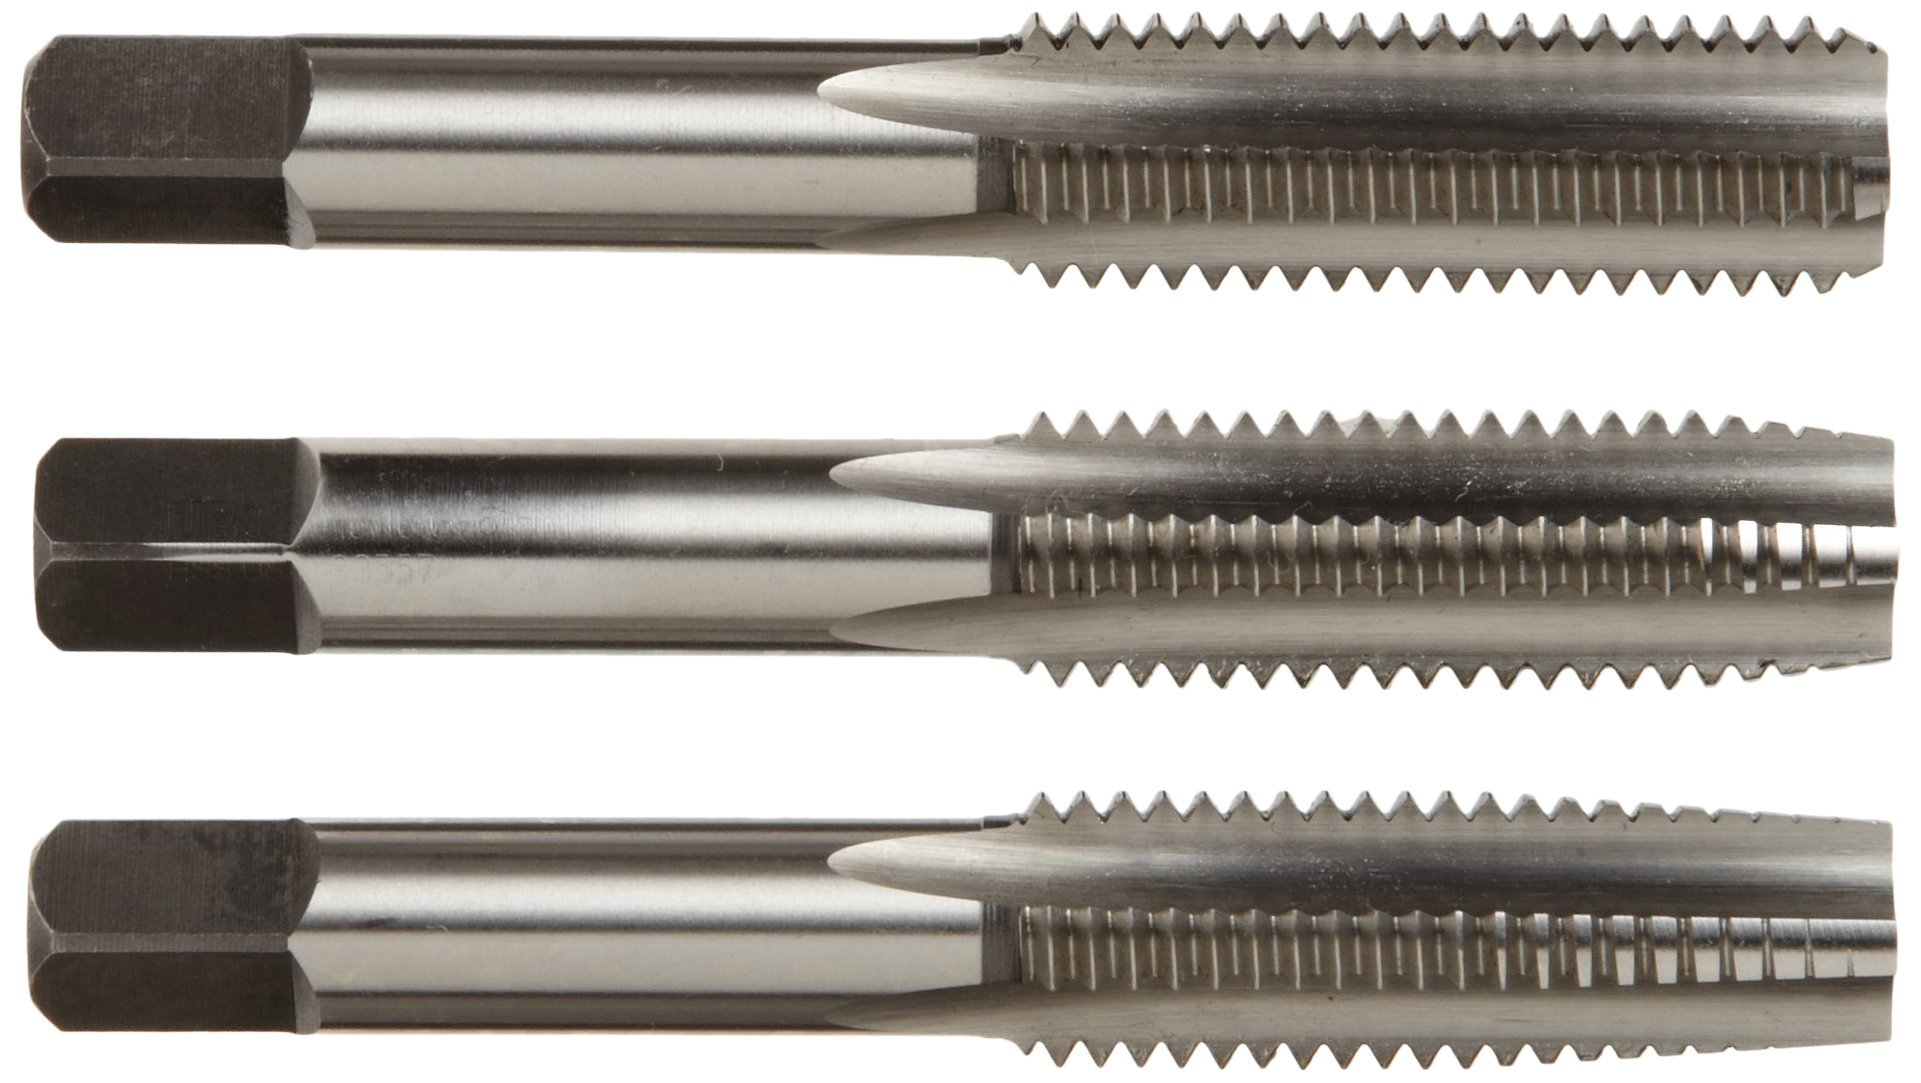 Alfa Tools HSMTS171023 7mm by 1.0mm High-Speed Steel Tap Set (Taper/Plug/Bottom) Made In USA, by Alfa Tools